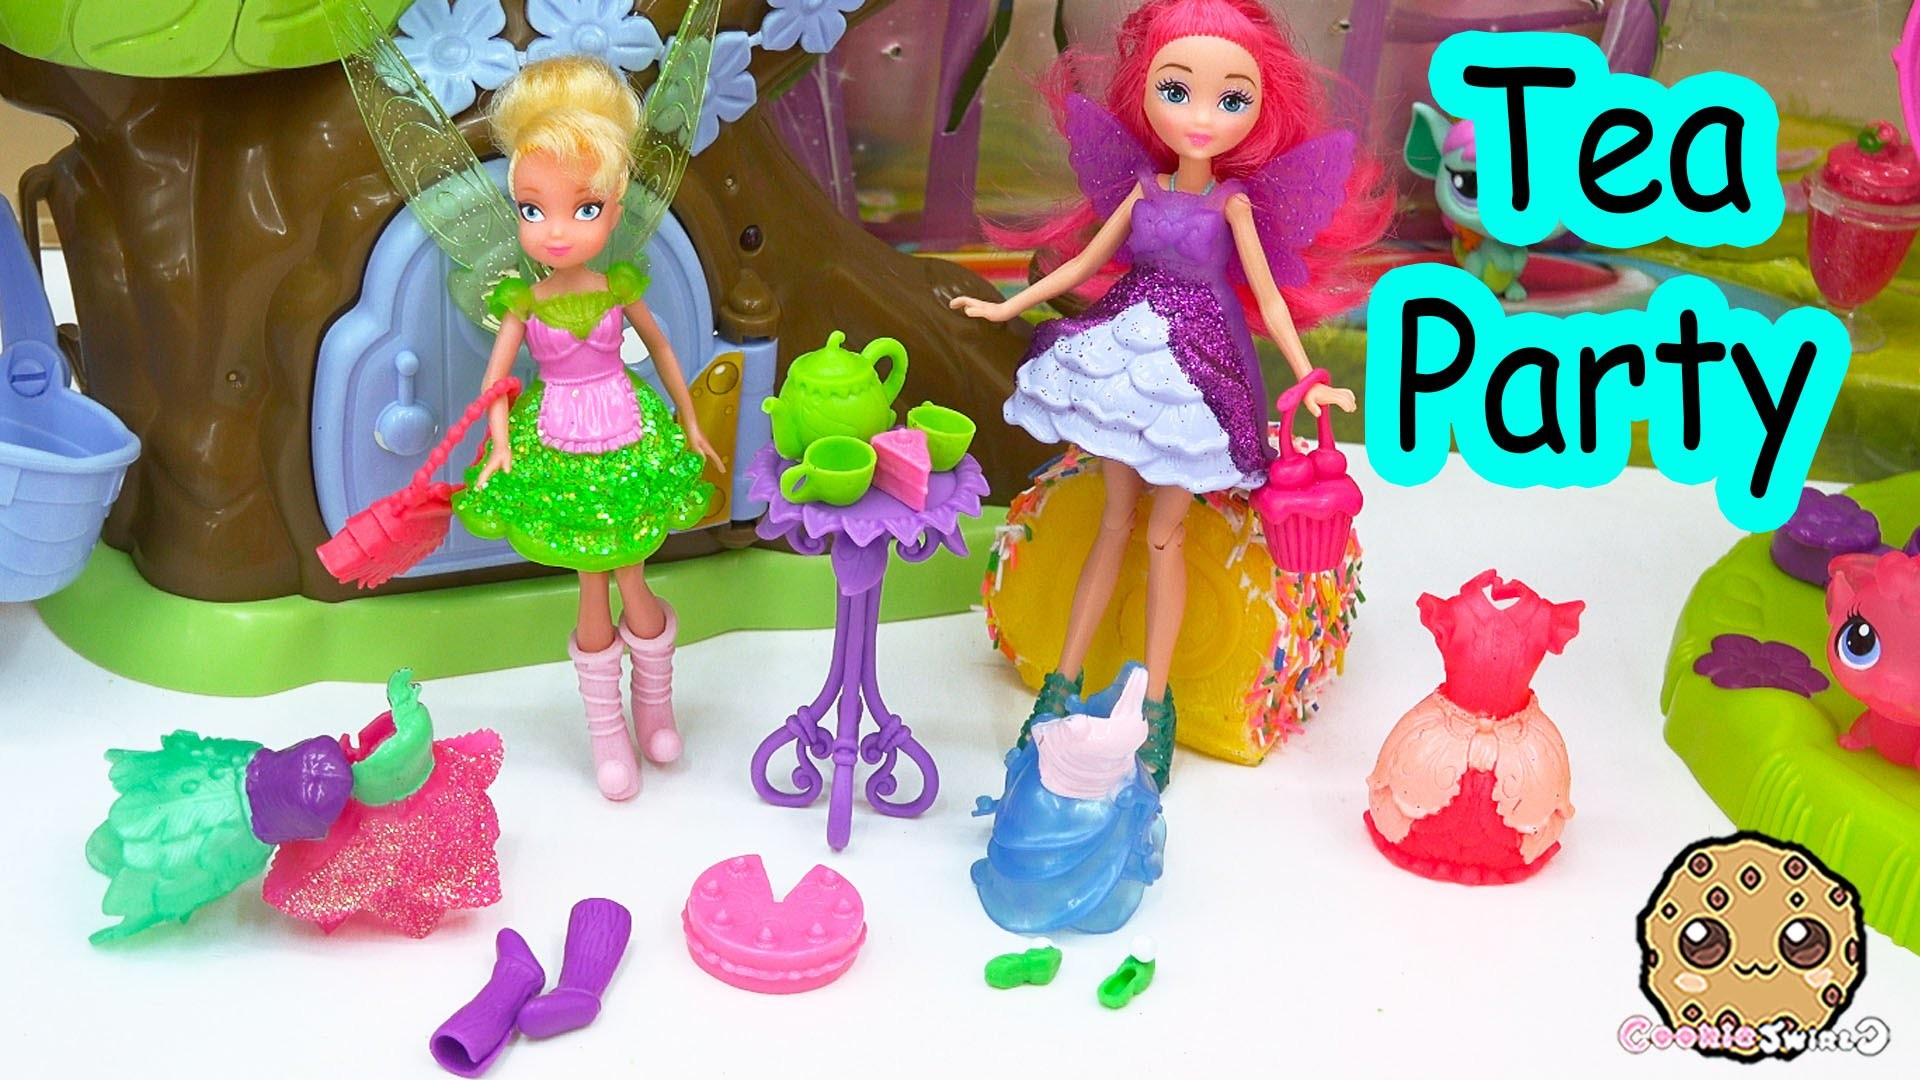 Disney Faries Tinker Bell Pixie Sweets Bakery Mini Fairy Doll Dress Up Tea  Party With Barbie – YouTube